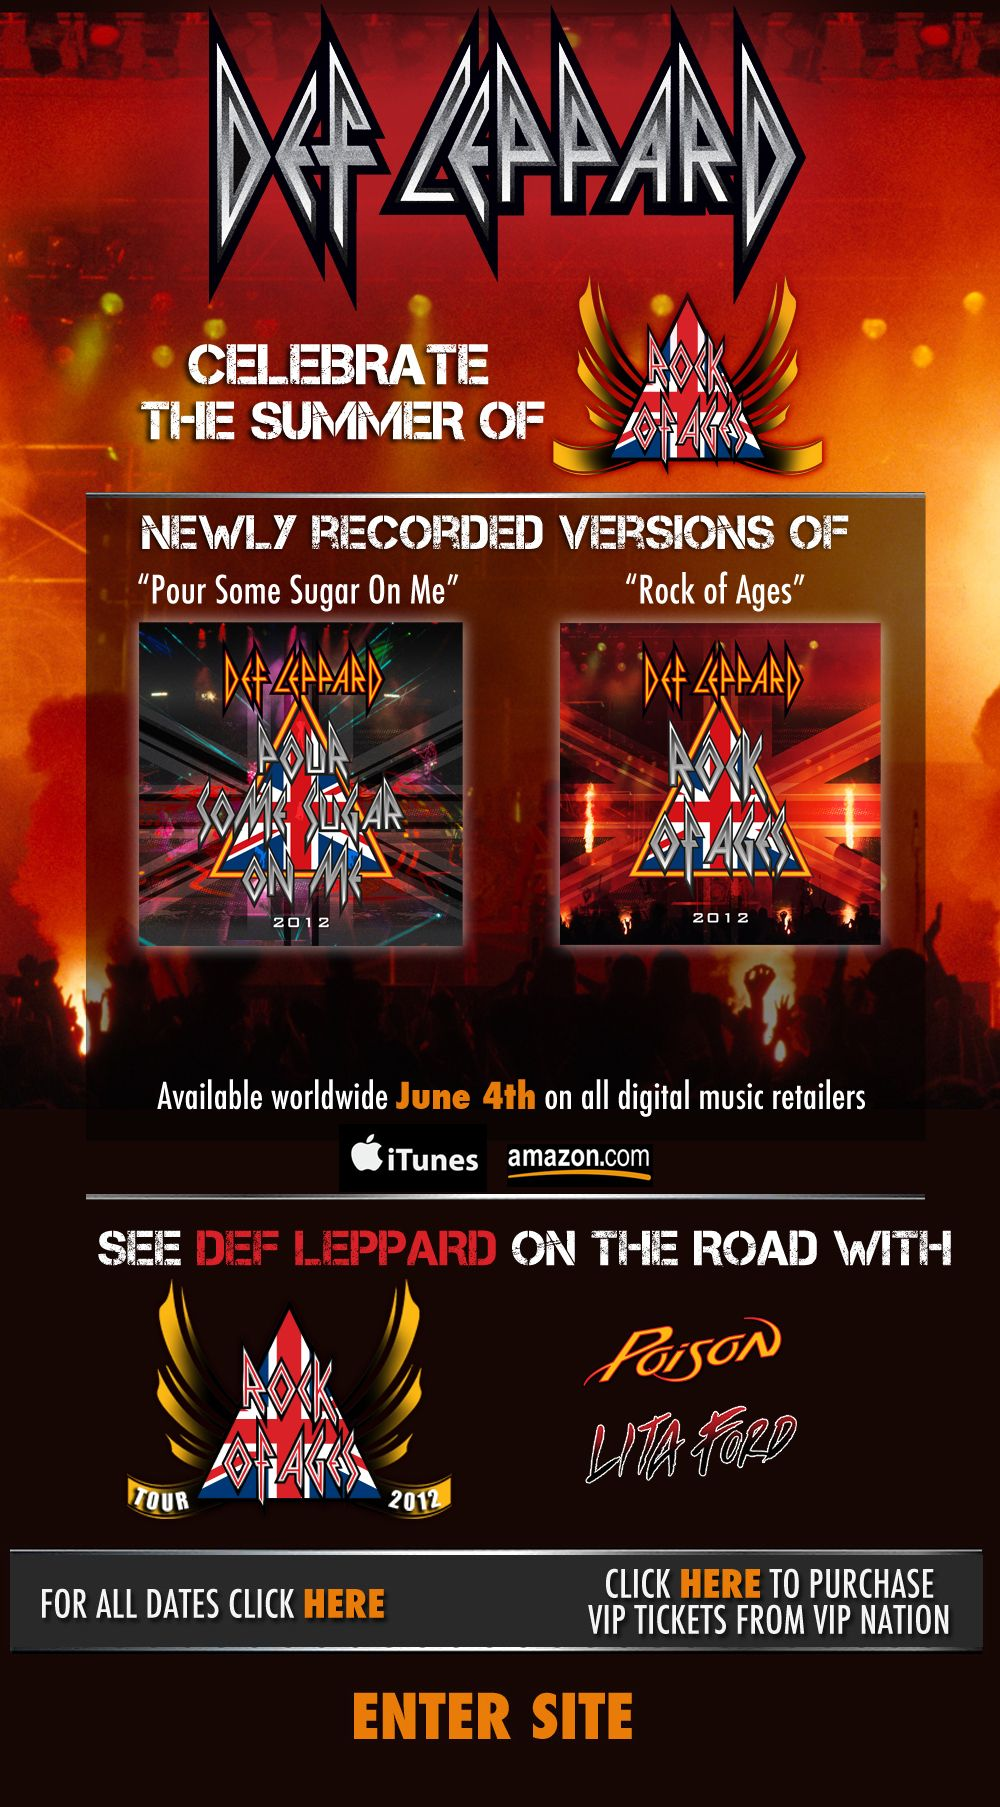 Def Leppard Rock Of Ages Tour With Poison And Lita Ford Going Def Leppard Rock Of Ages Tours